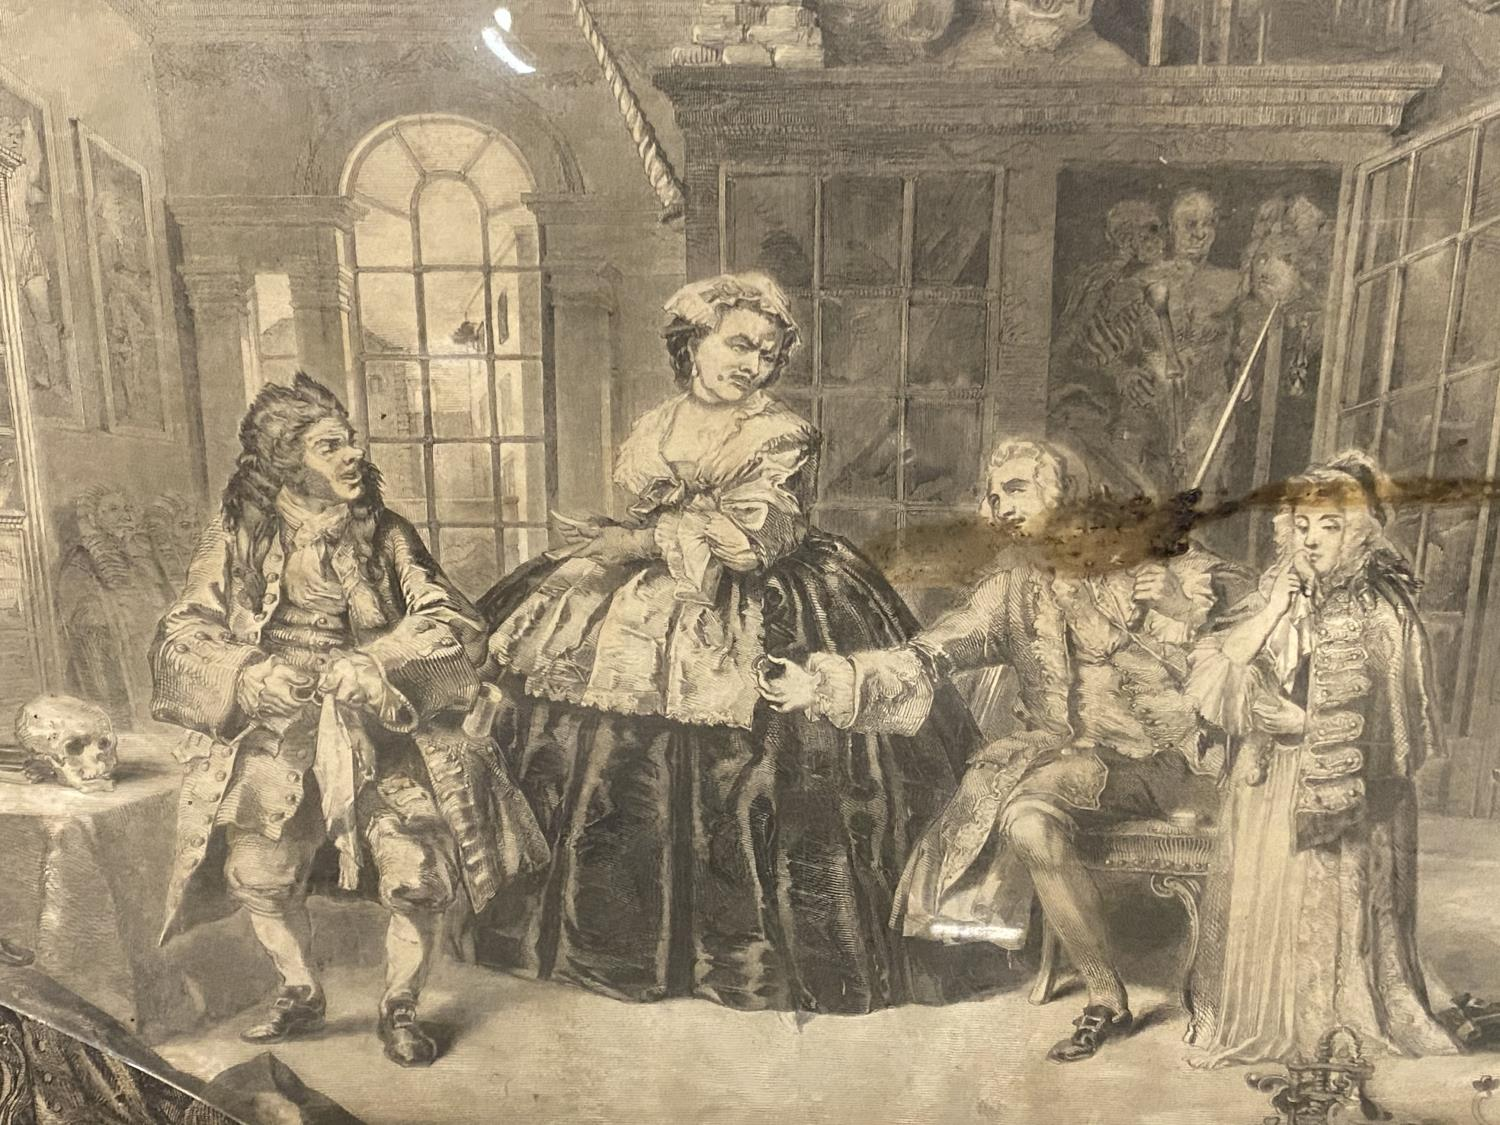 Six Hogarth black and white engravings, various plates, including Marriage a la Mode, in original - Image 3 of 8